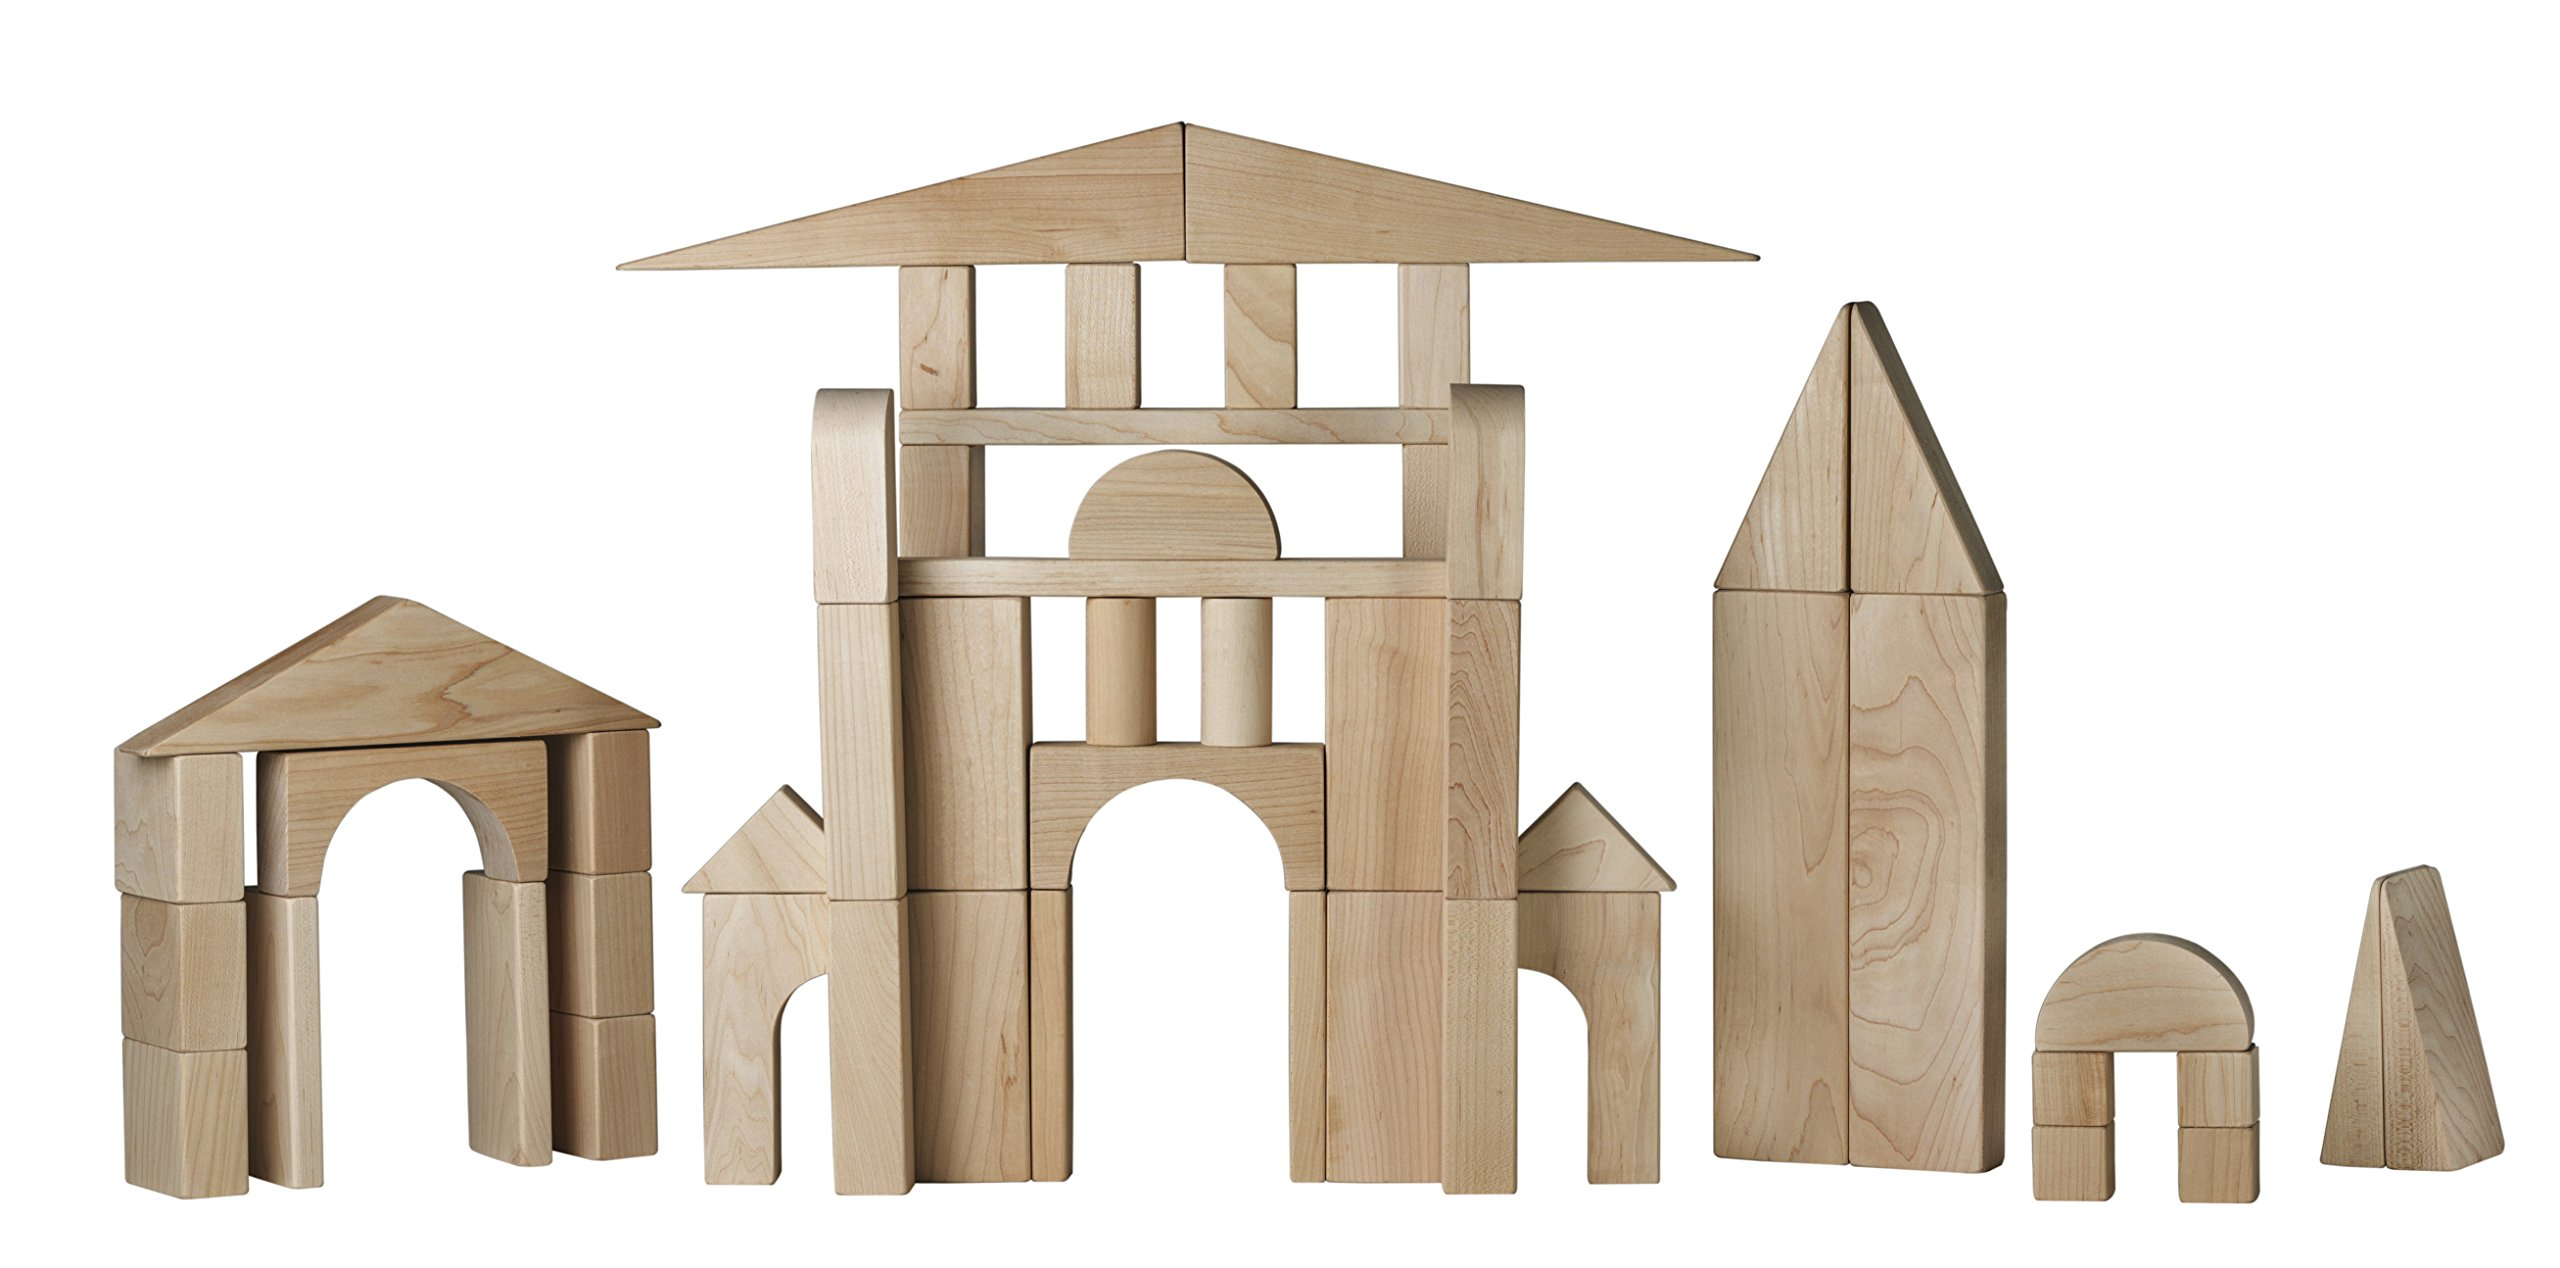 Wooden Building Blocks Set - Standard Unit Blocks - Made From Top Quality Hard Maple Wood - 55 Wooden Blocks 19 Shapes and Sizes - Made In USA by Maple Wood Toys